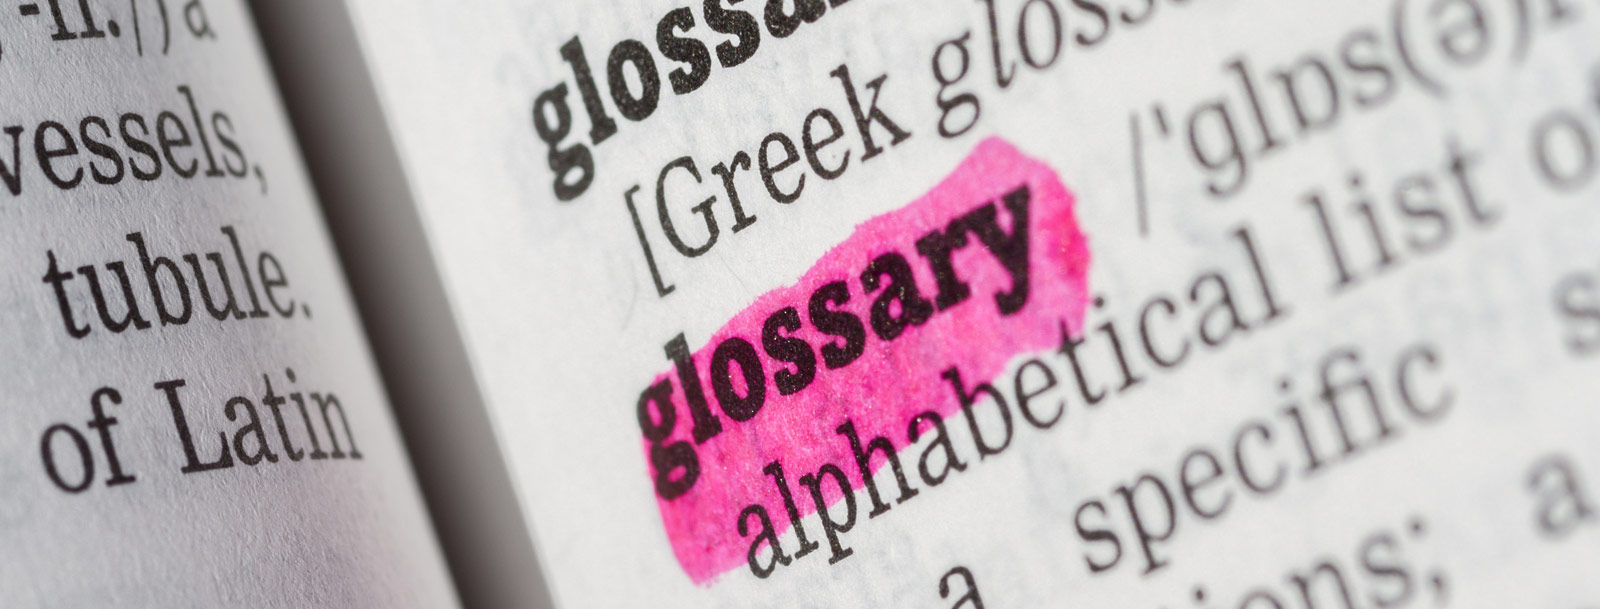 A glossary to help you understand the terminology at the senior living in Farmington